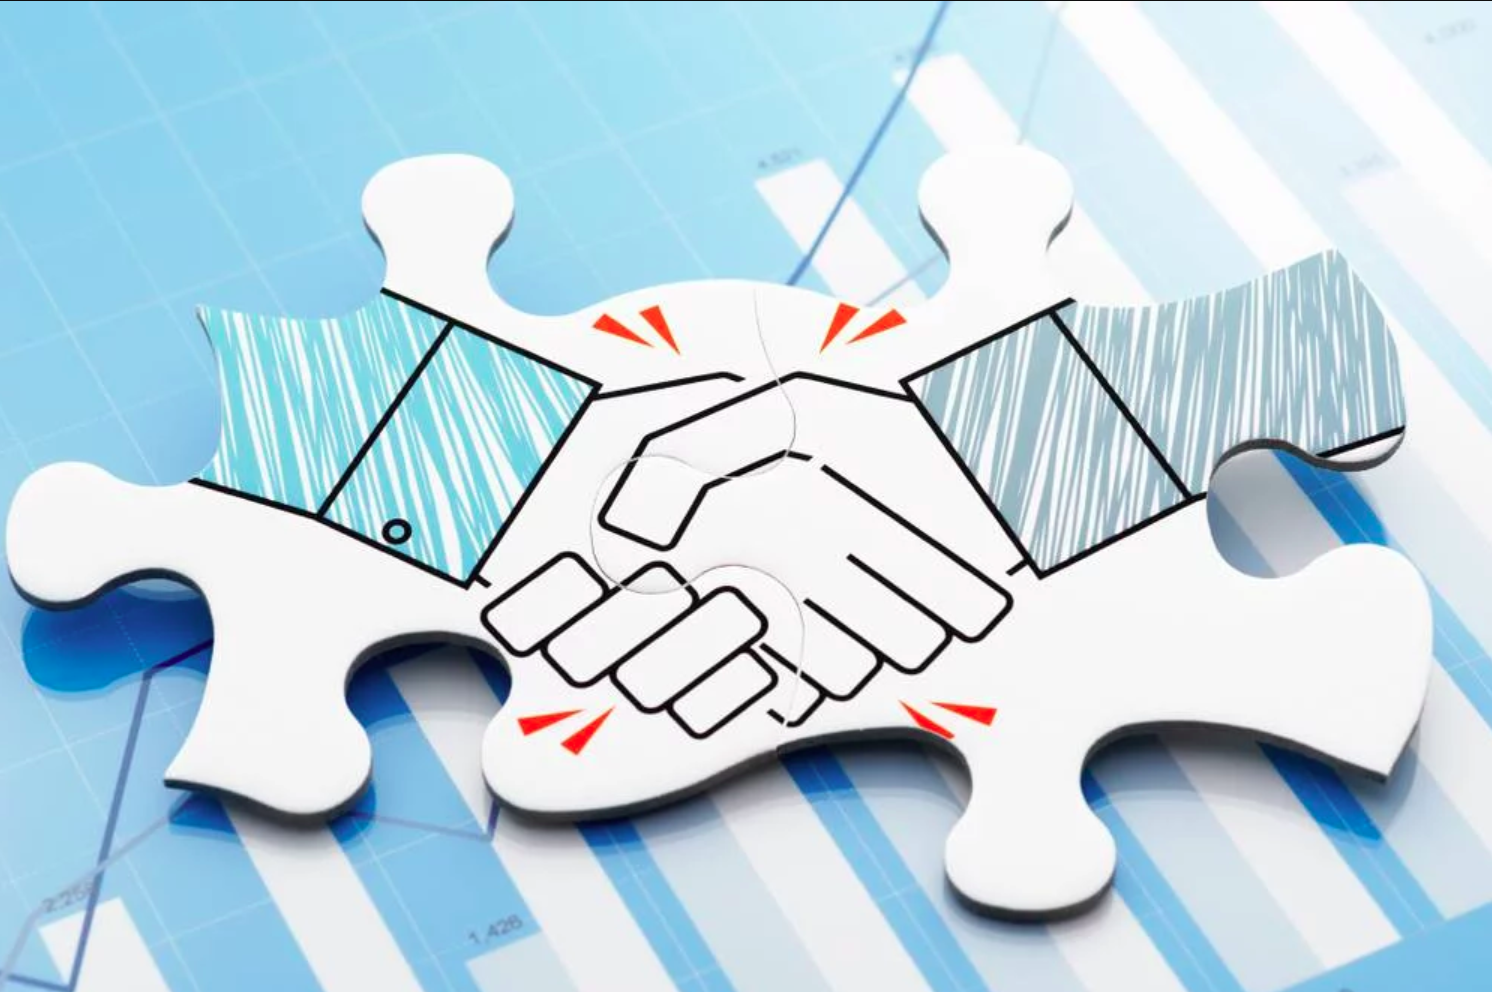 strategic partnerships and cross promotion